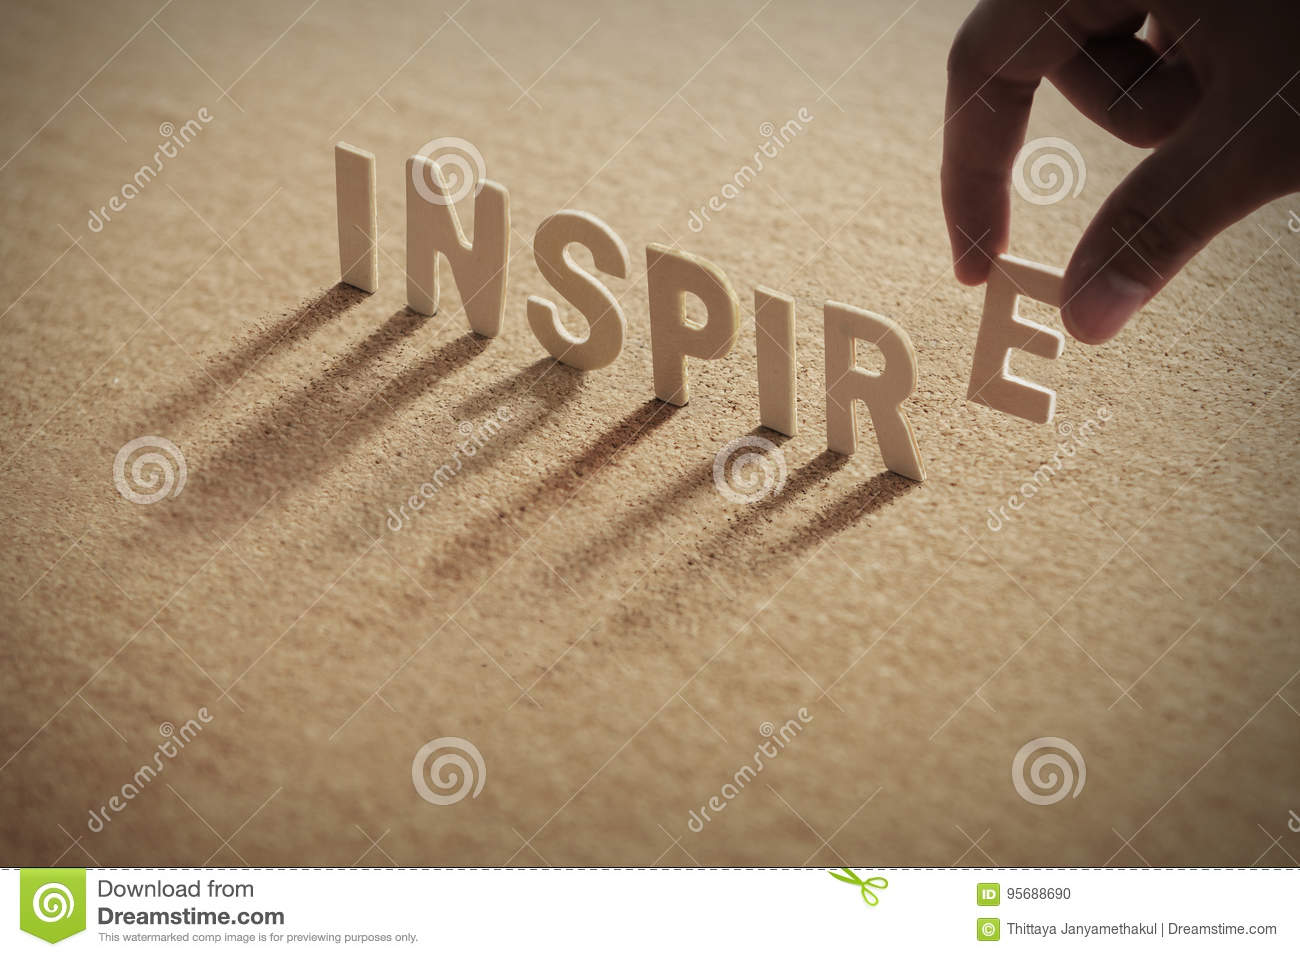 INSPIRE wood word on compressed board